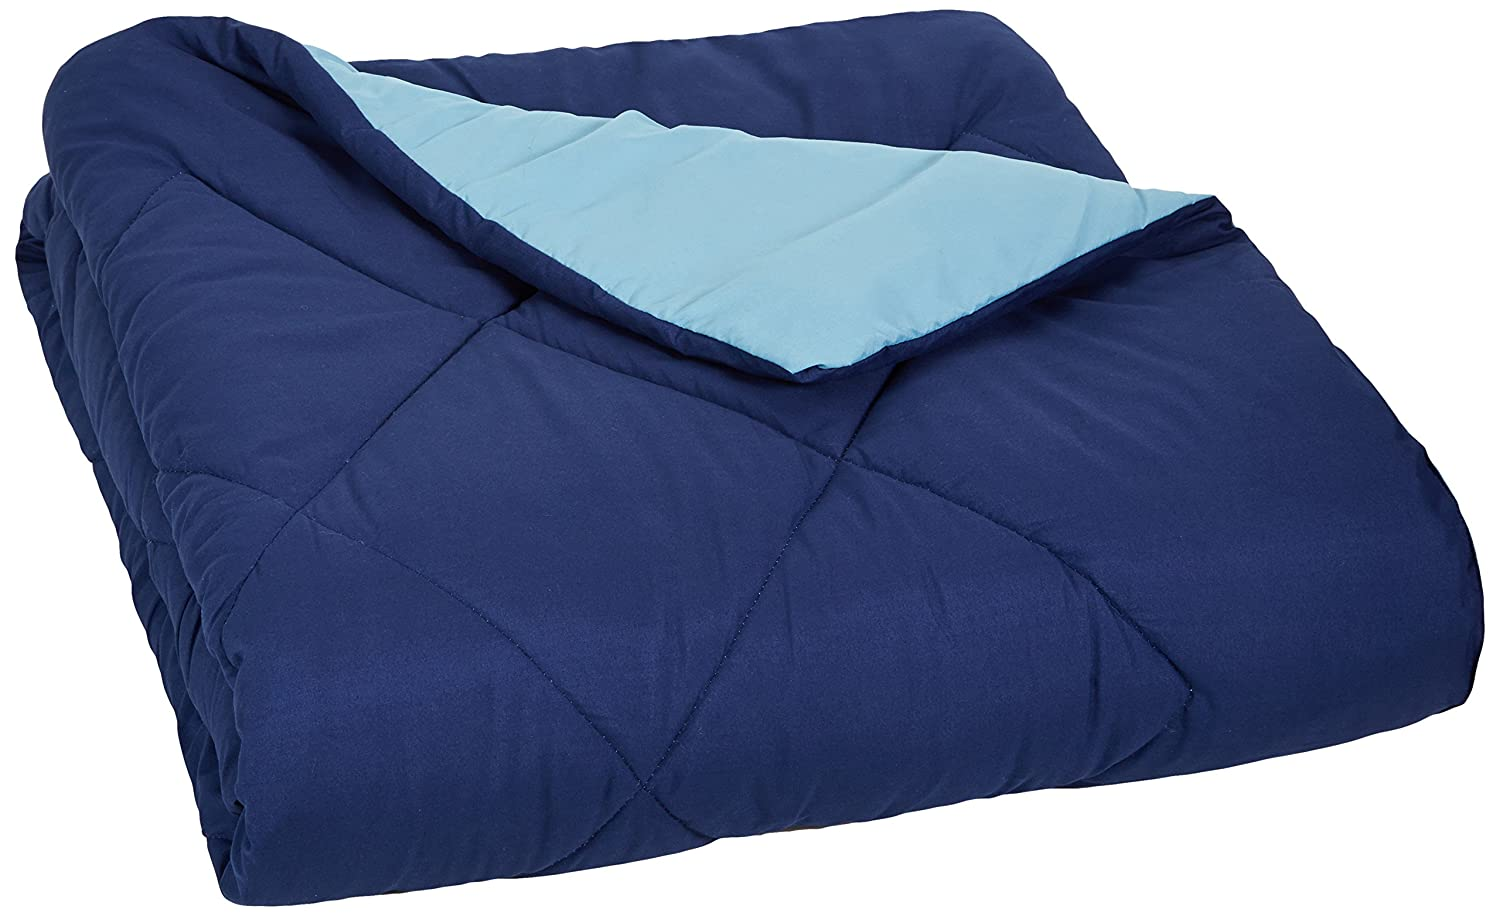 Microfiber Comforter - Twin/Twin Extra-Long, Navy Blue